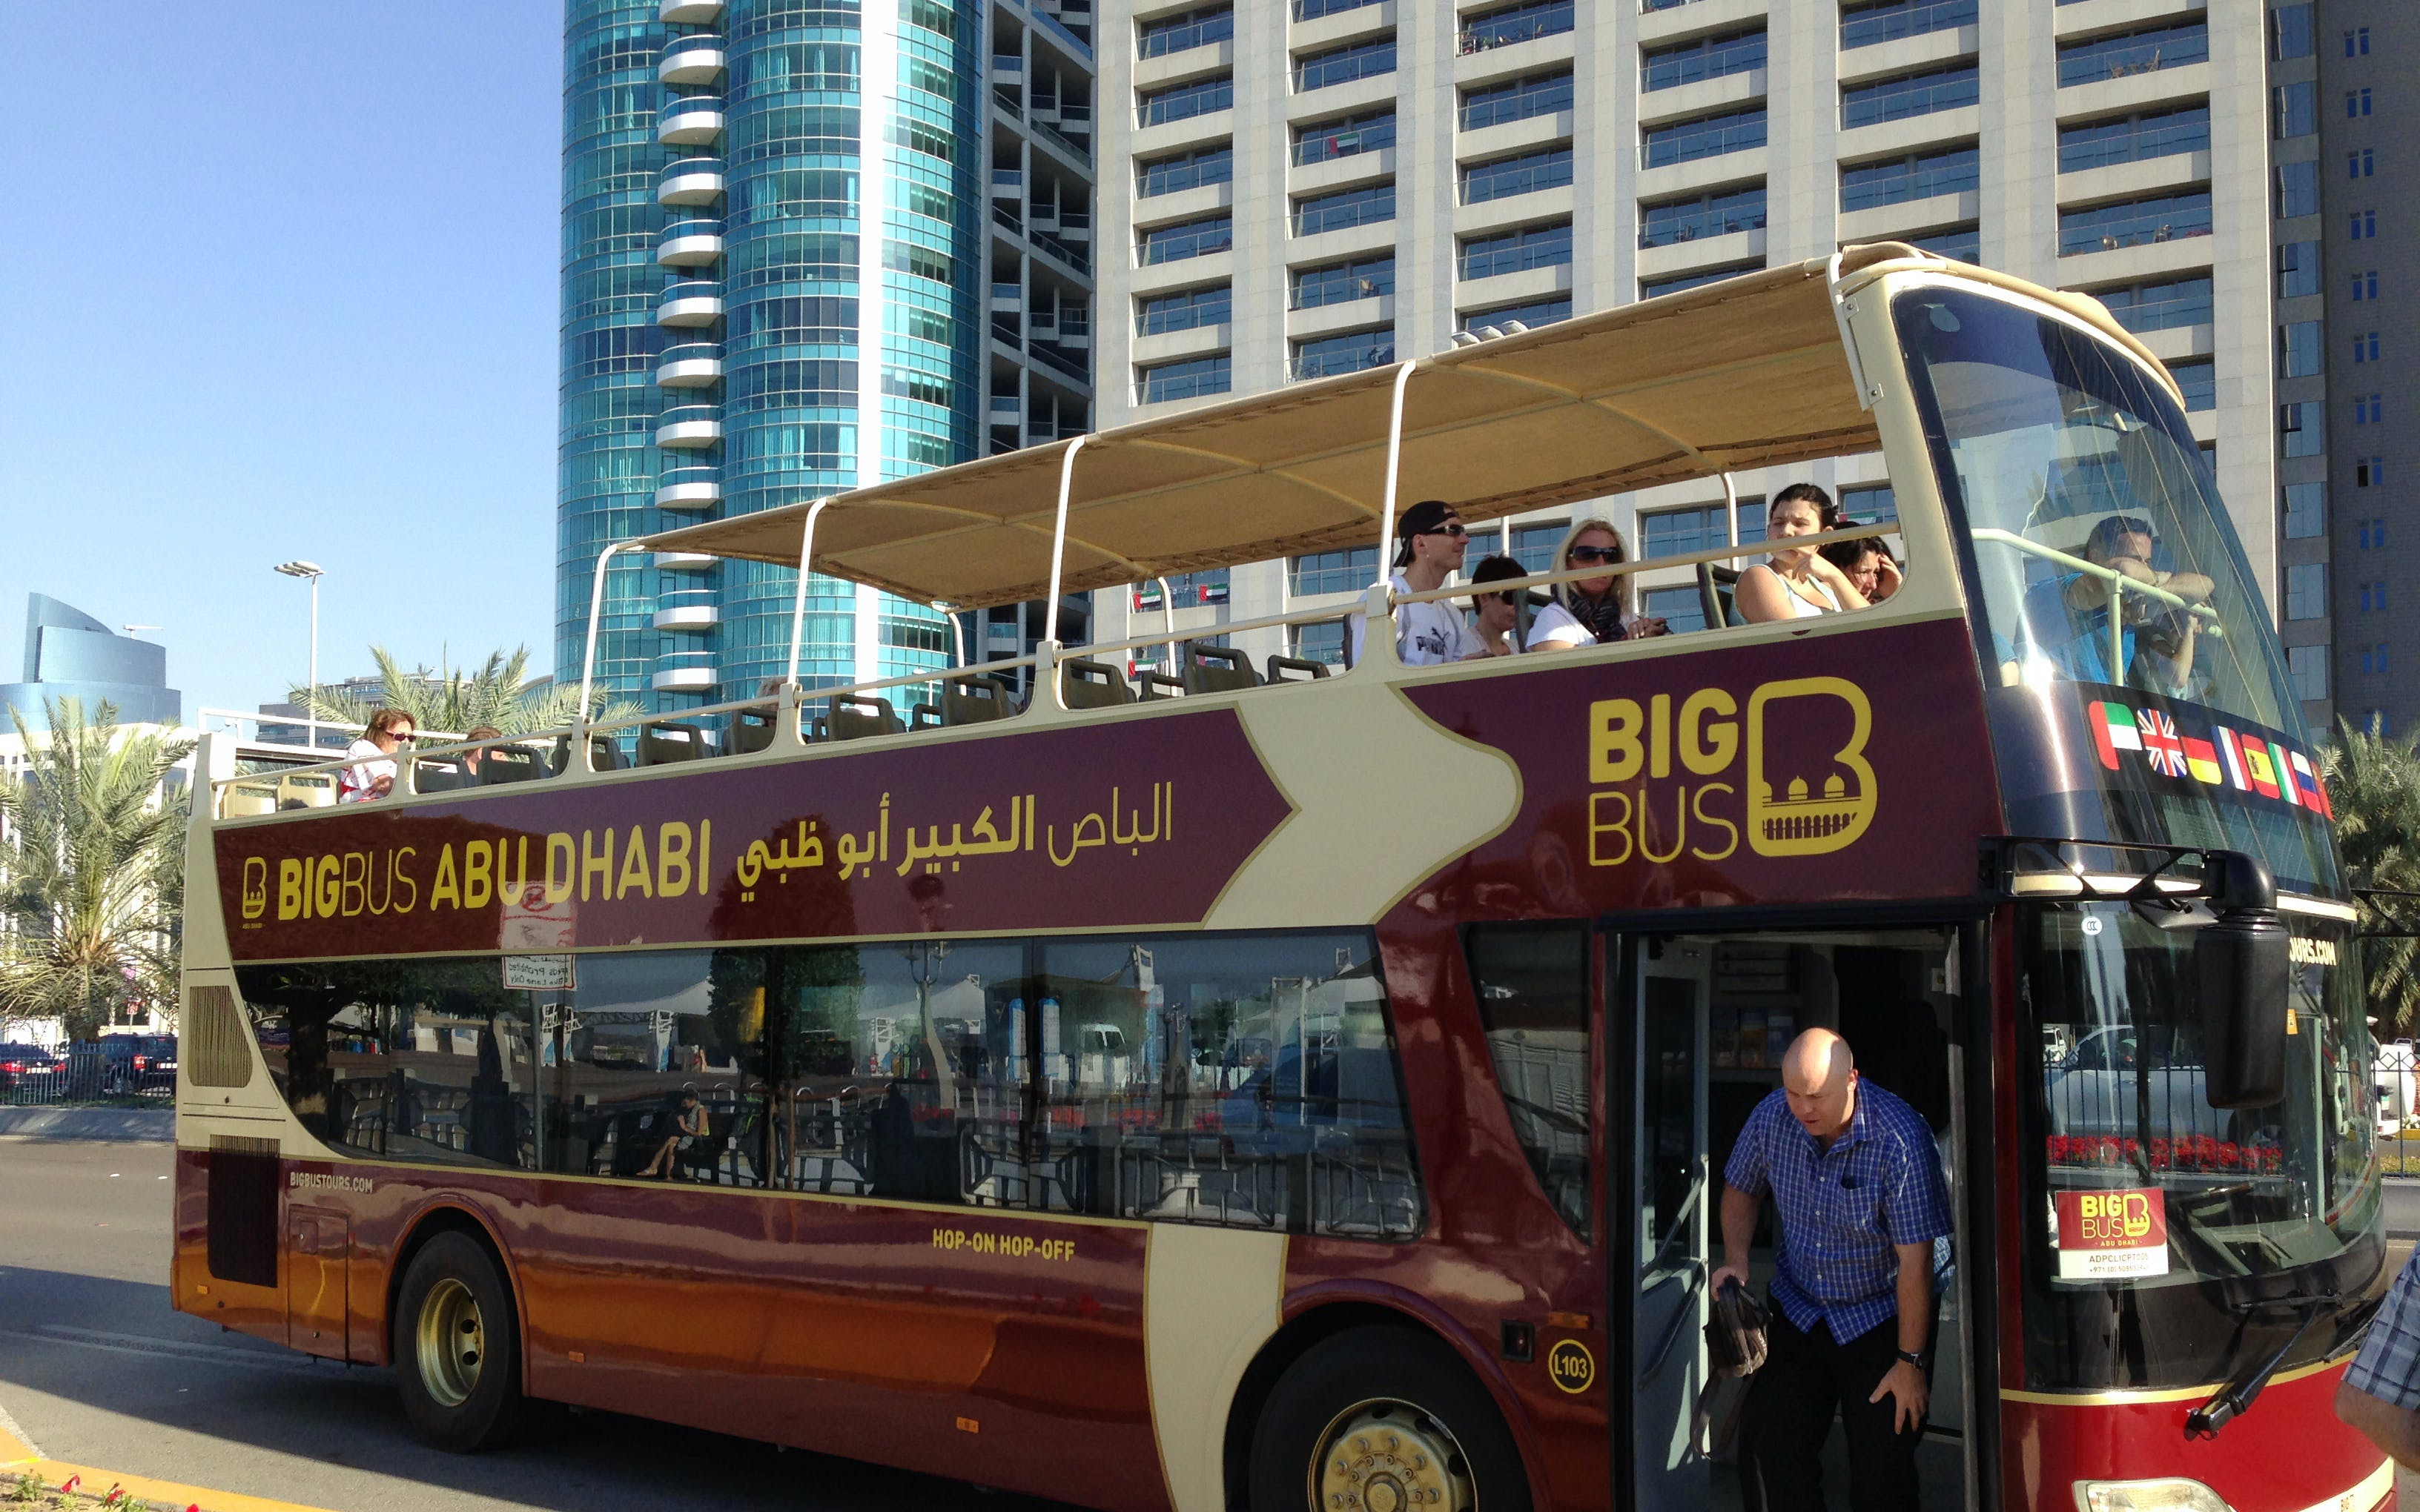 abu dhabi & dubai big bus hop-on hop-off combo bus tour-2